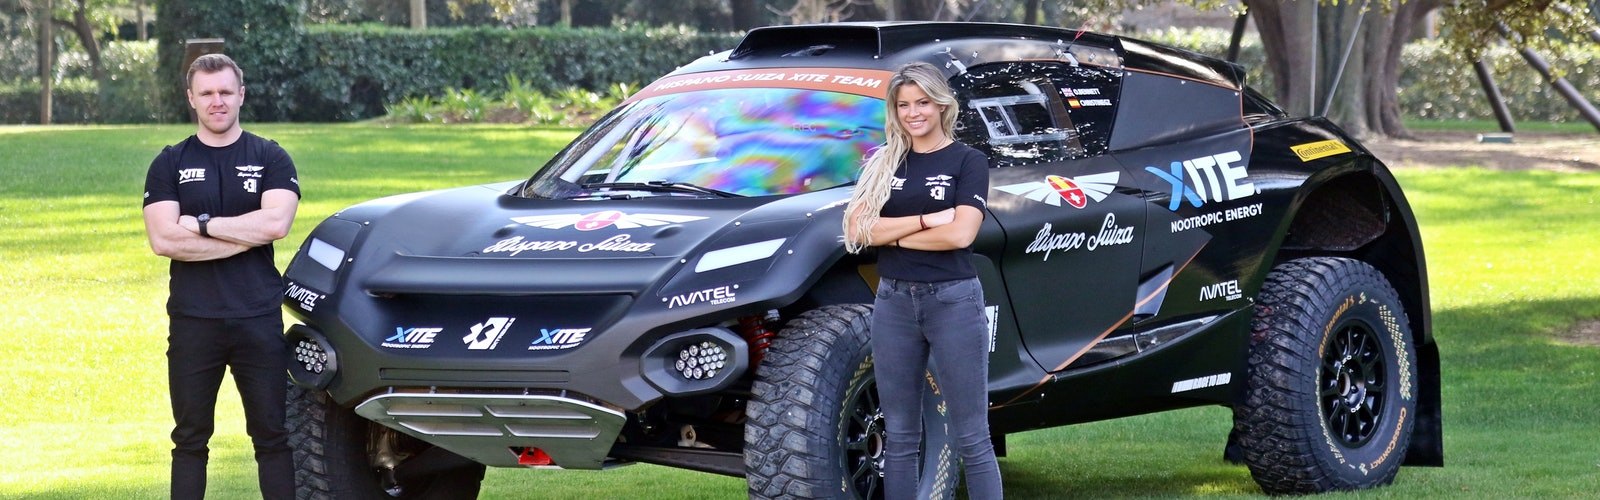 Oliver Bennett and Christine Giampaoli Zonca_HISPANO SUIZA XITE ENERGY TEAM_1